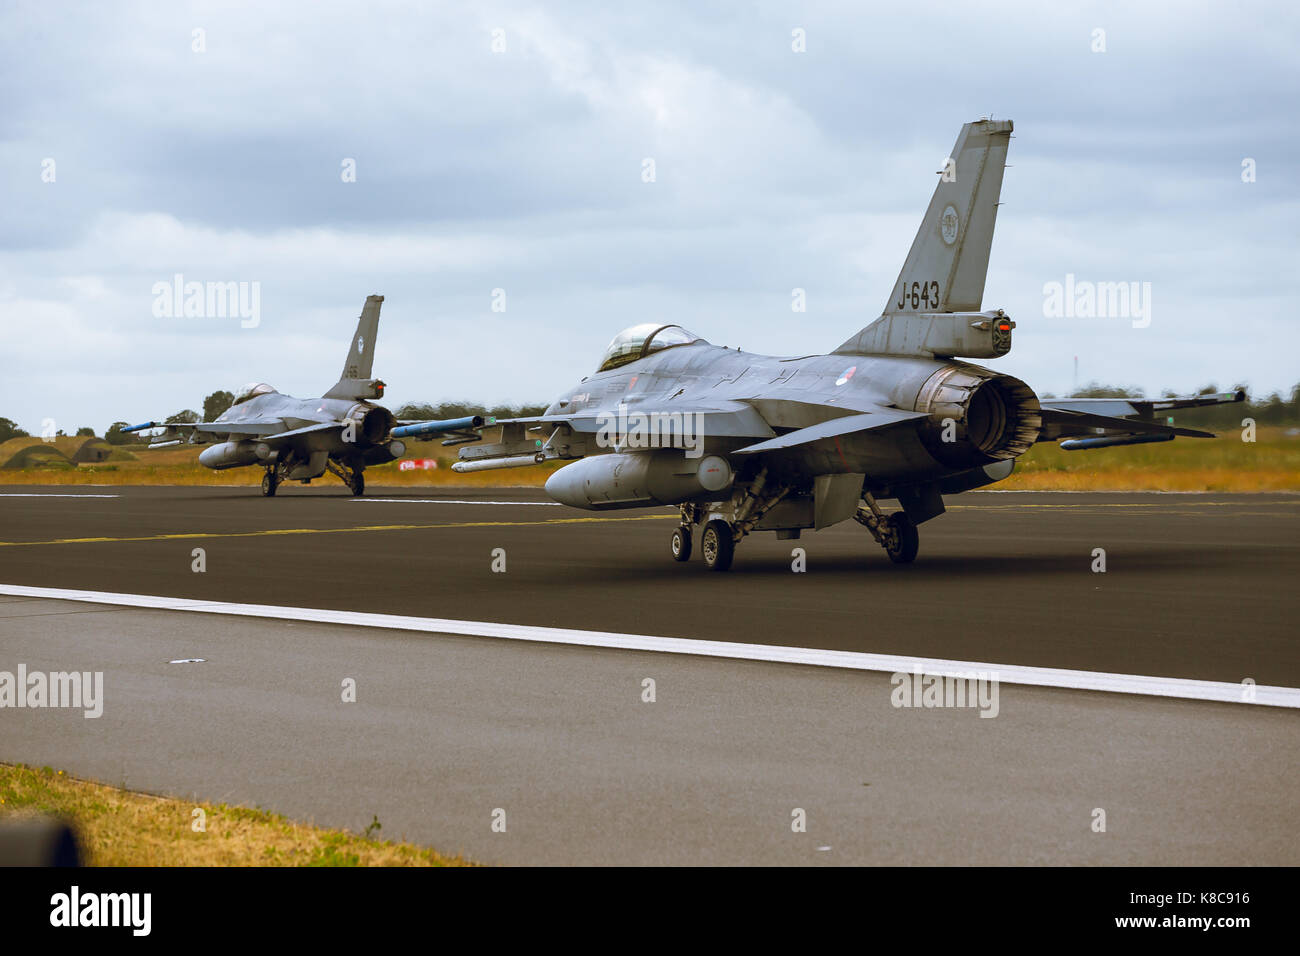 General Dynamics F-16A Fighting Falcon at NATO Tiger Meet 2014 - Stock Image